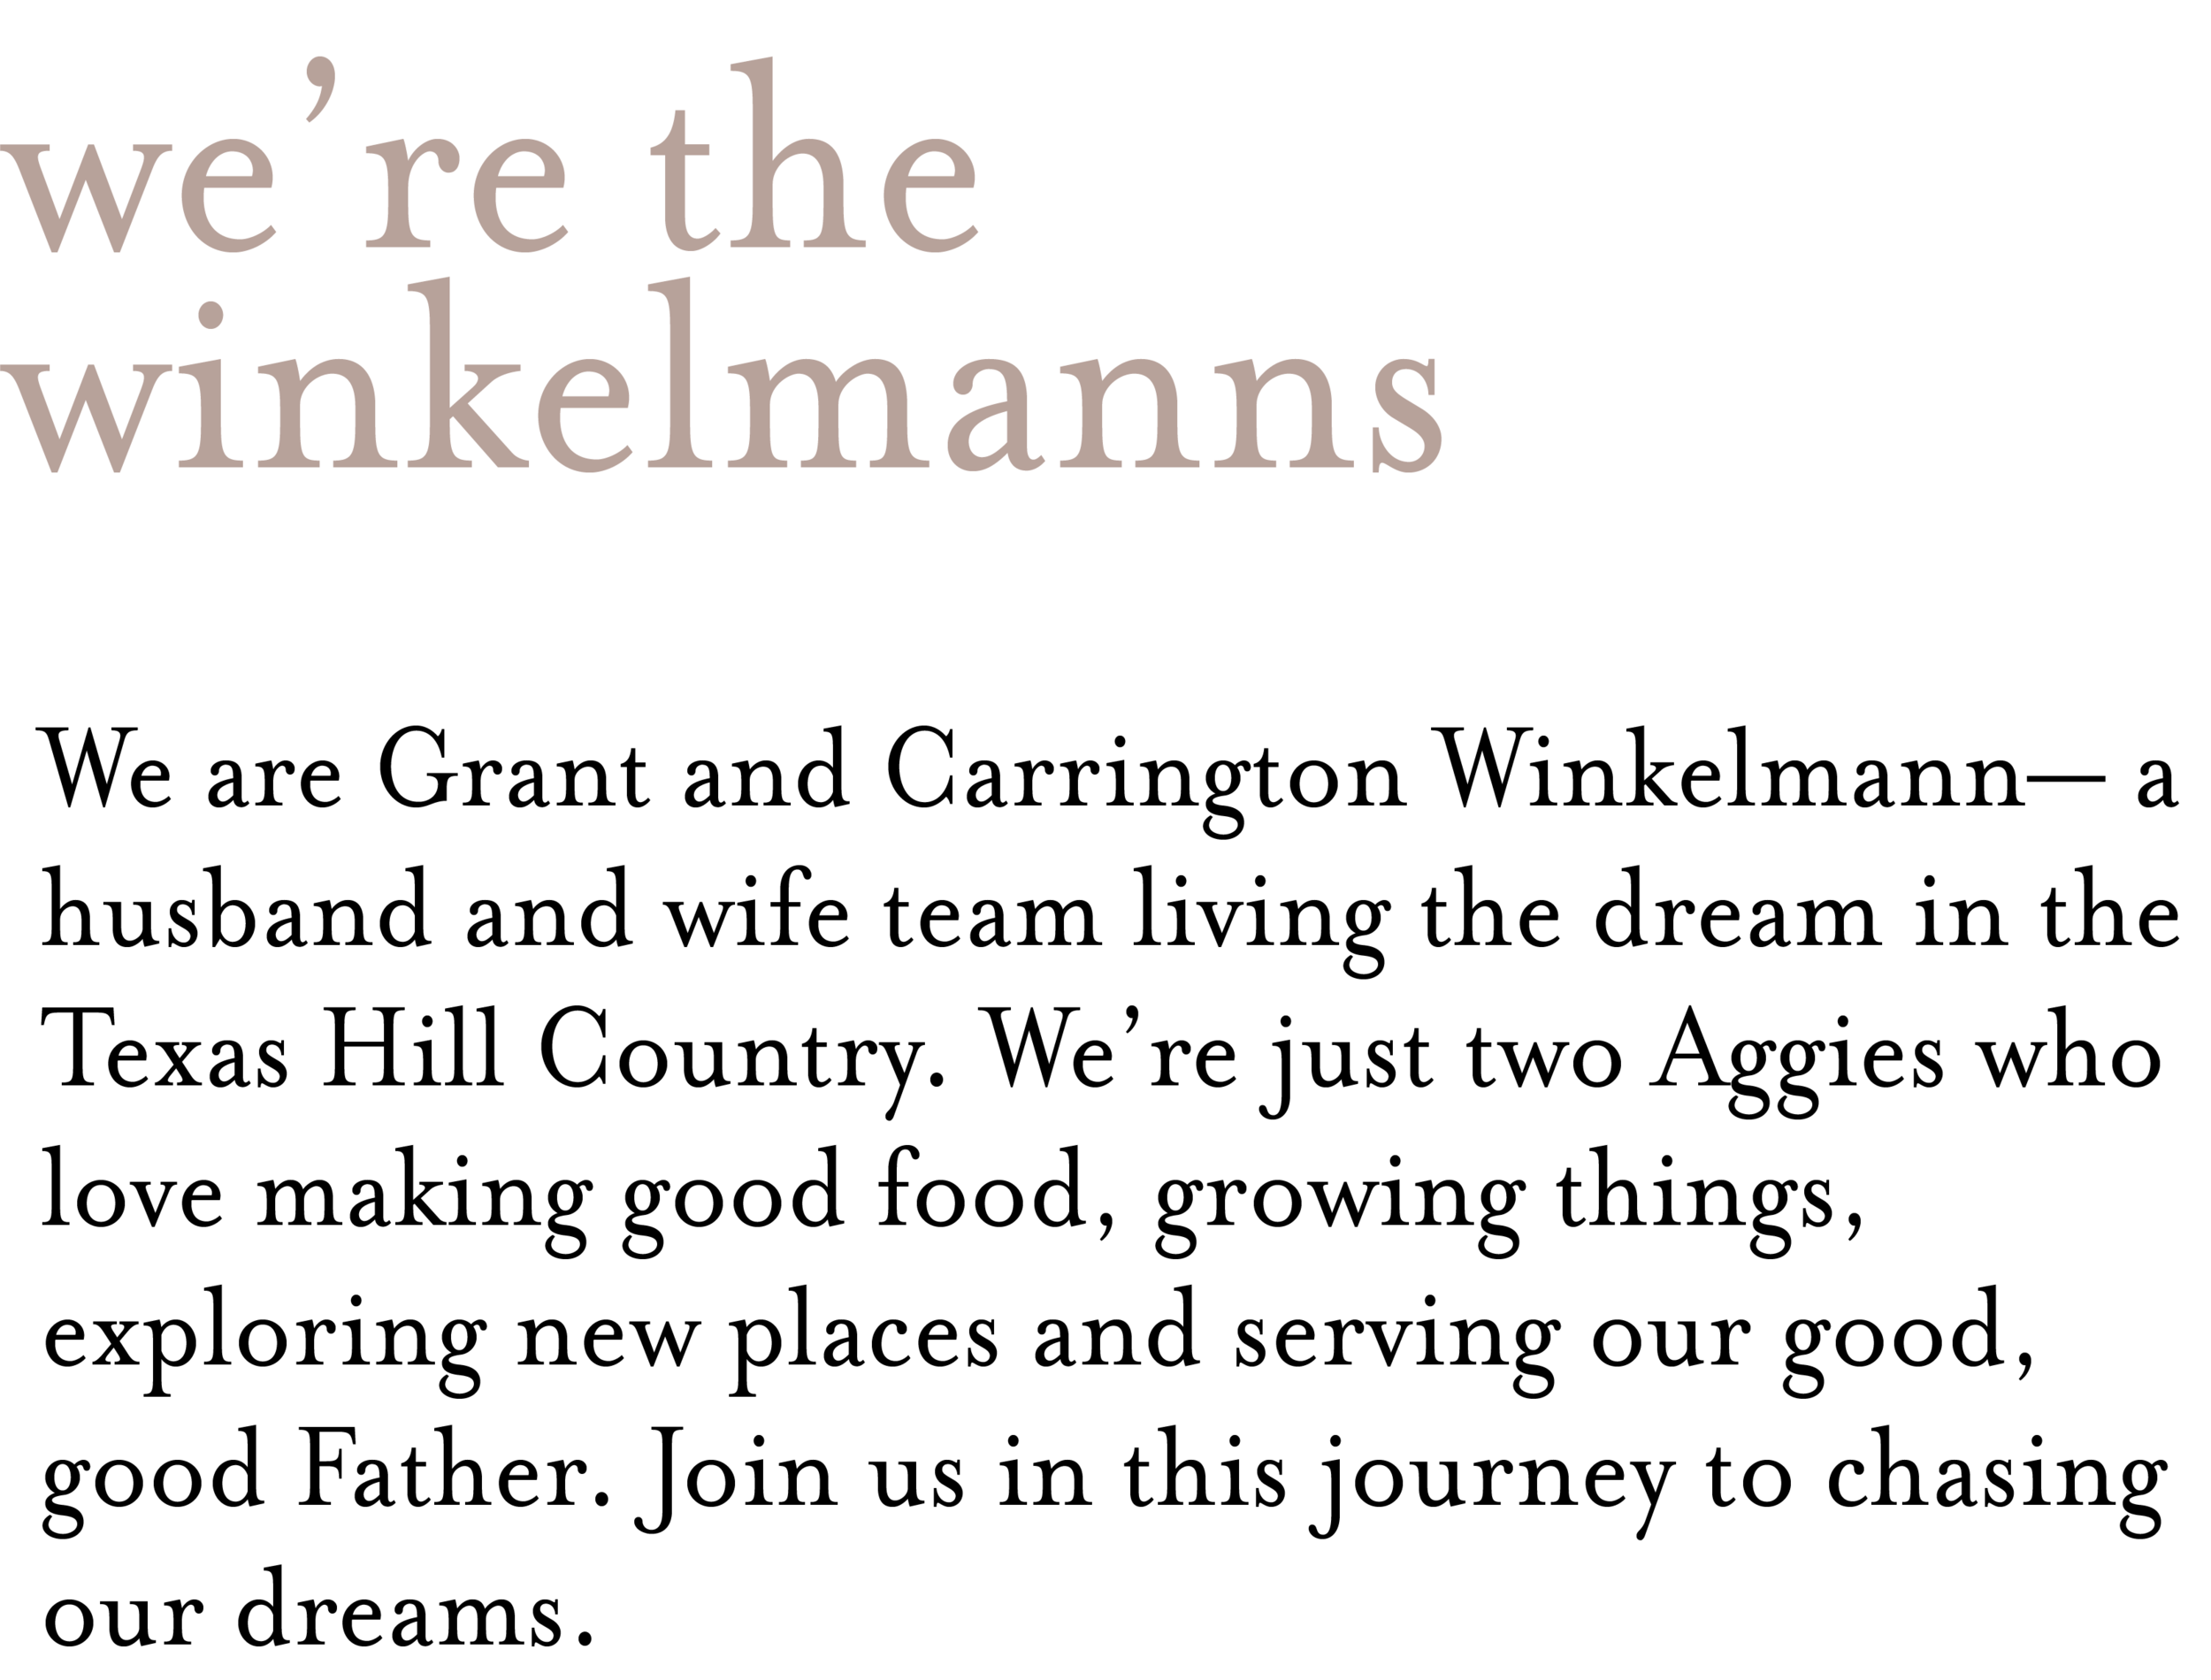 we_are_the_winkelmanns.png